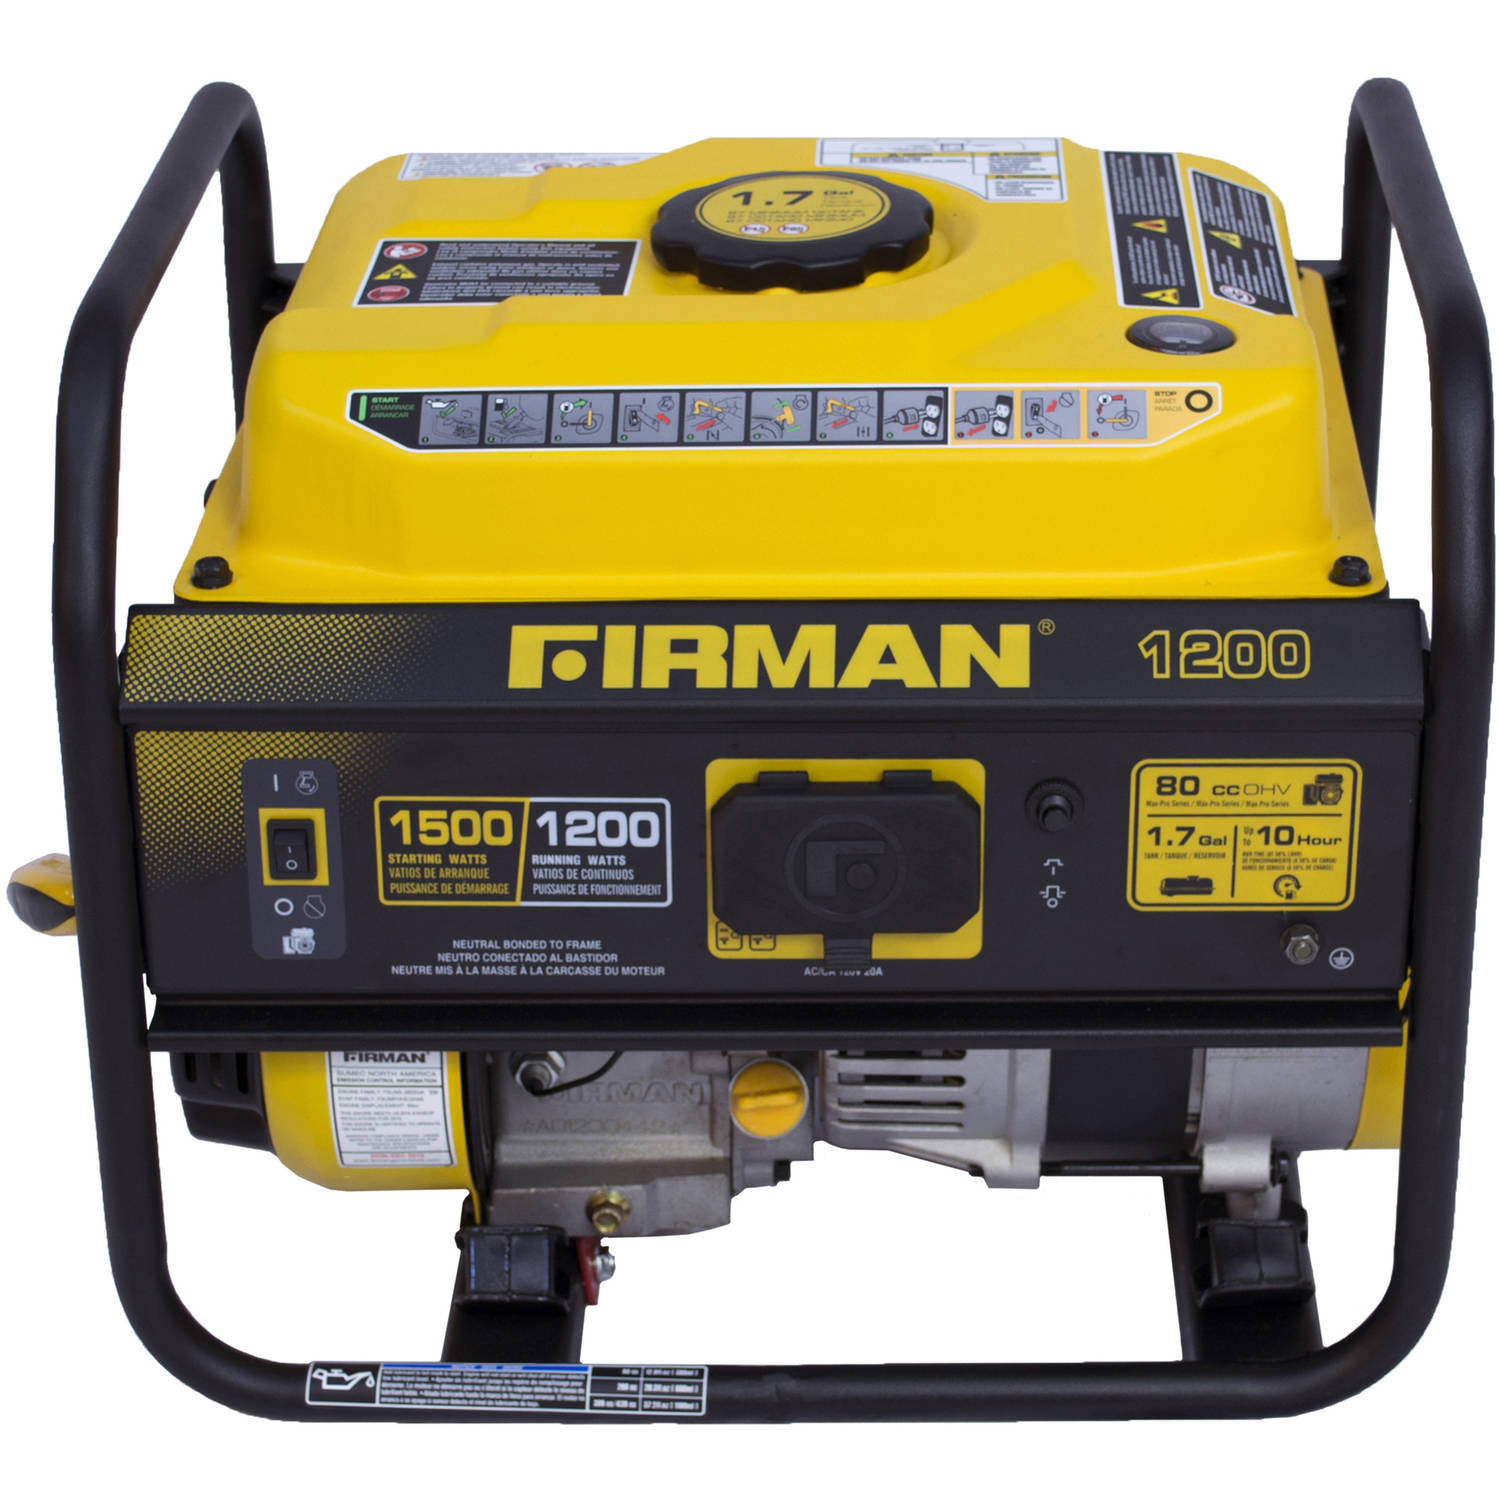 Firman Power Equipment P Gas Powered 1200 1500 Watt Portable